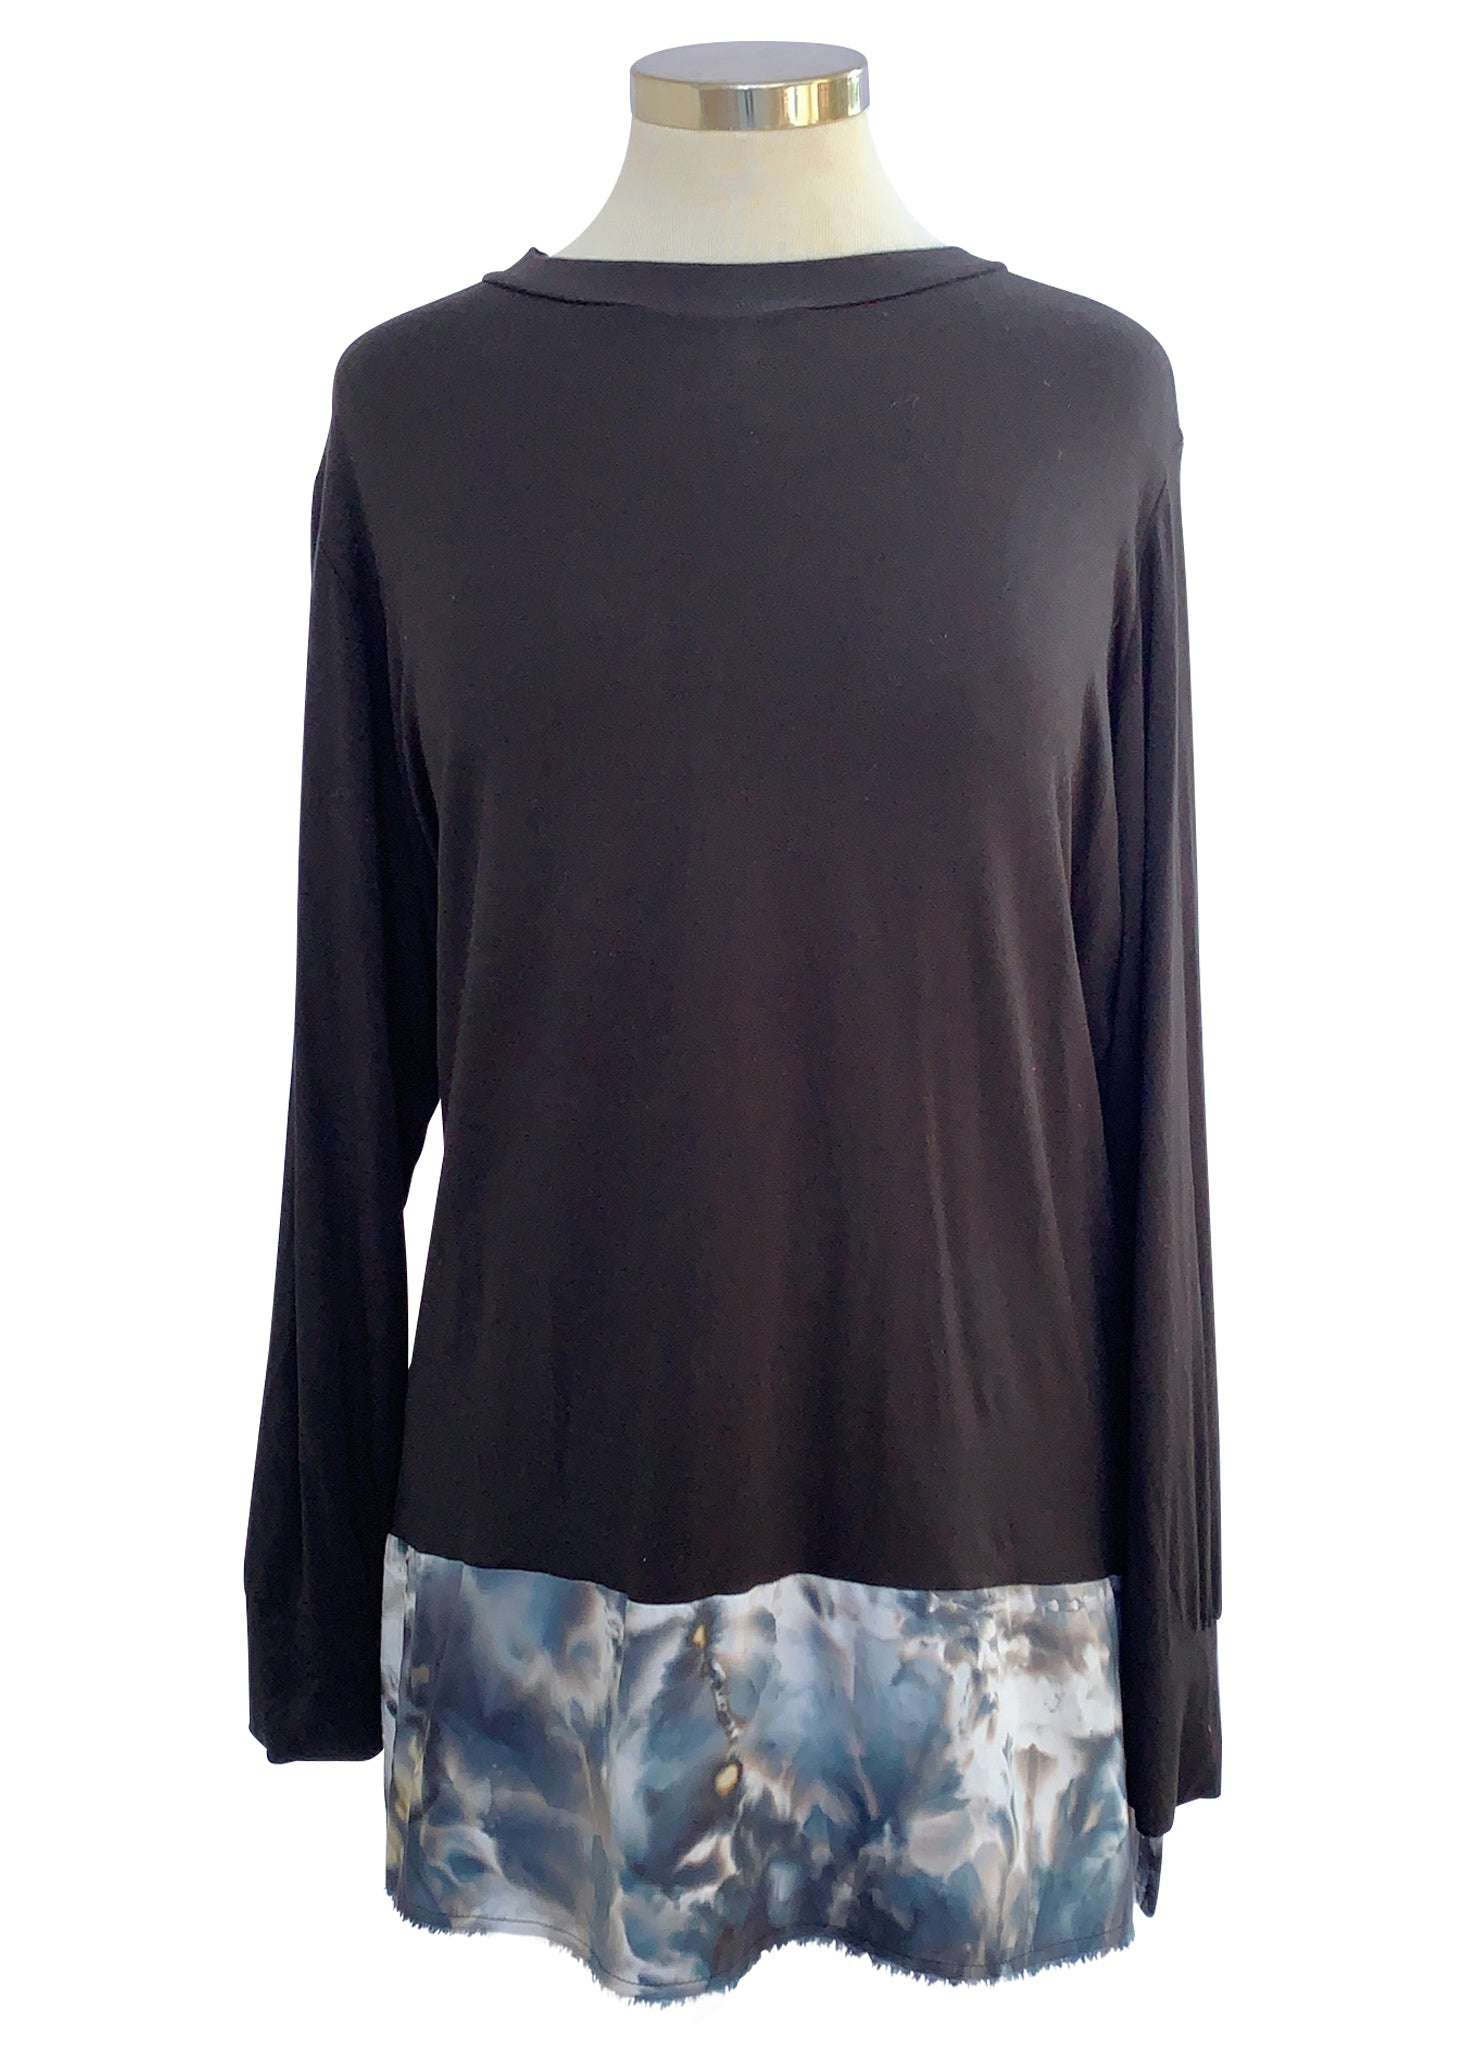 Mixed Fabric Tunic - Top - Dyetology